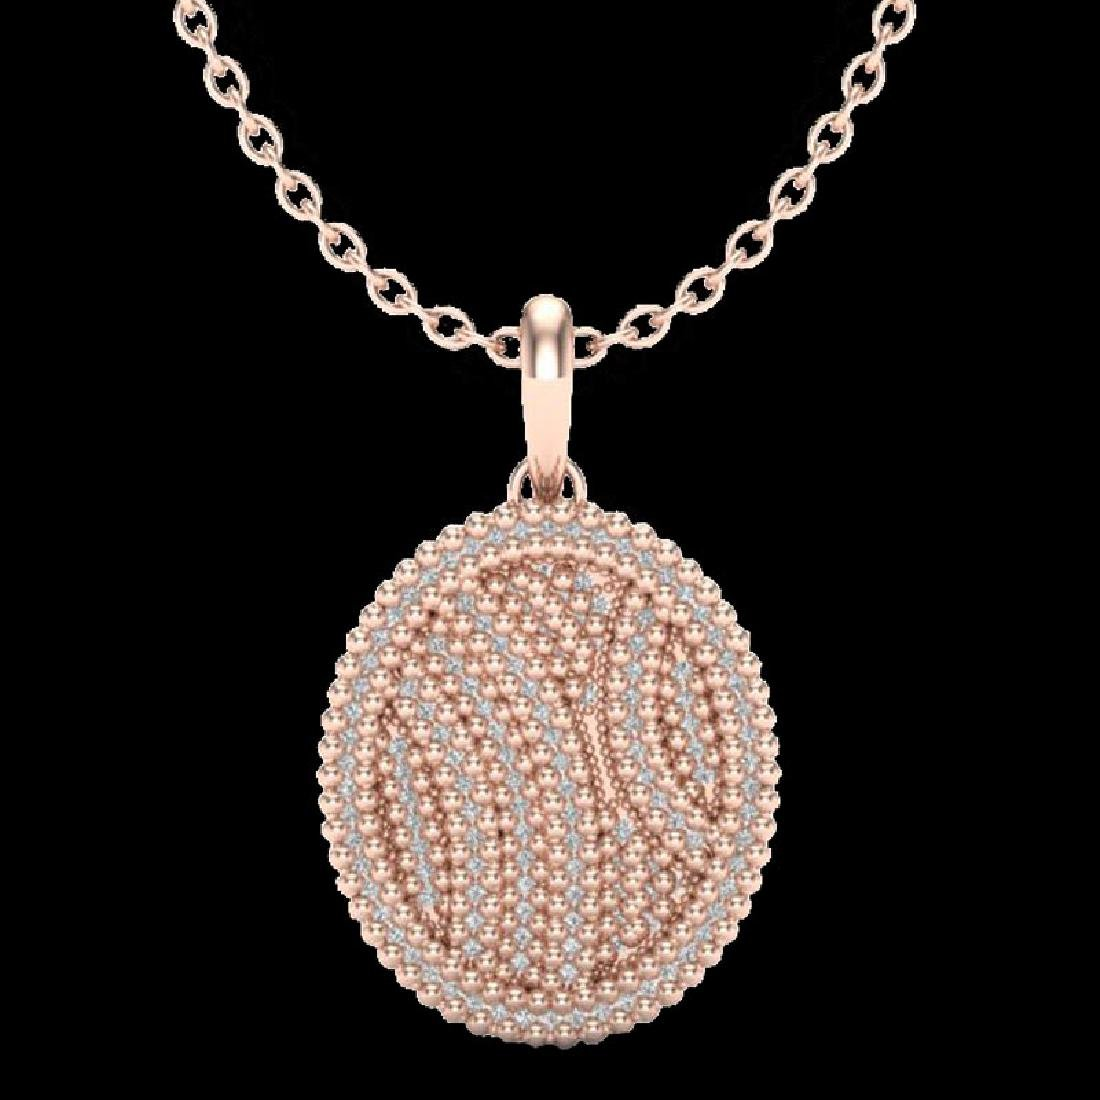 1 CTW Micro Pave VS/SI Diamond Necklace 14K Rose Gold